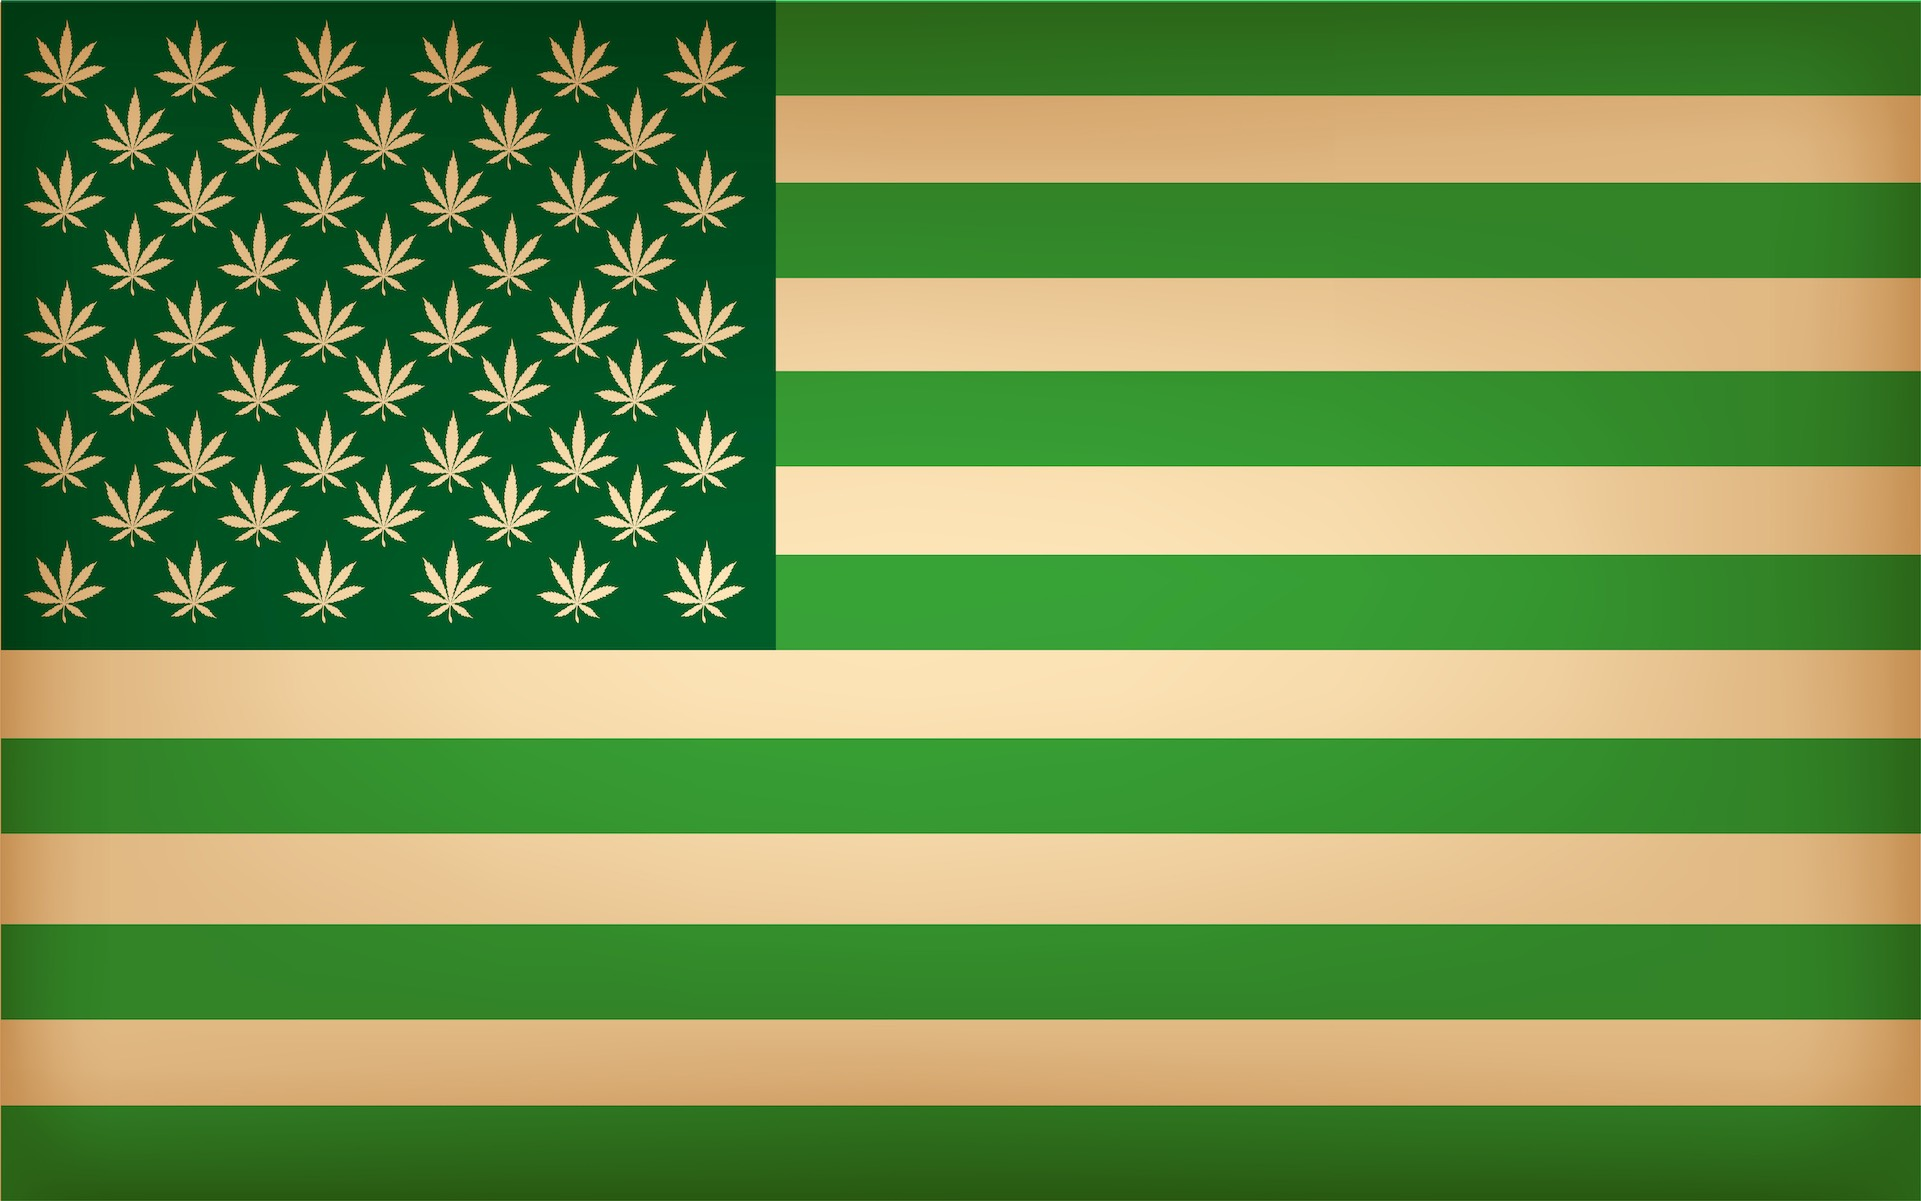 History made: US House of Representatives votes to end federal marijuana prohibition